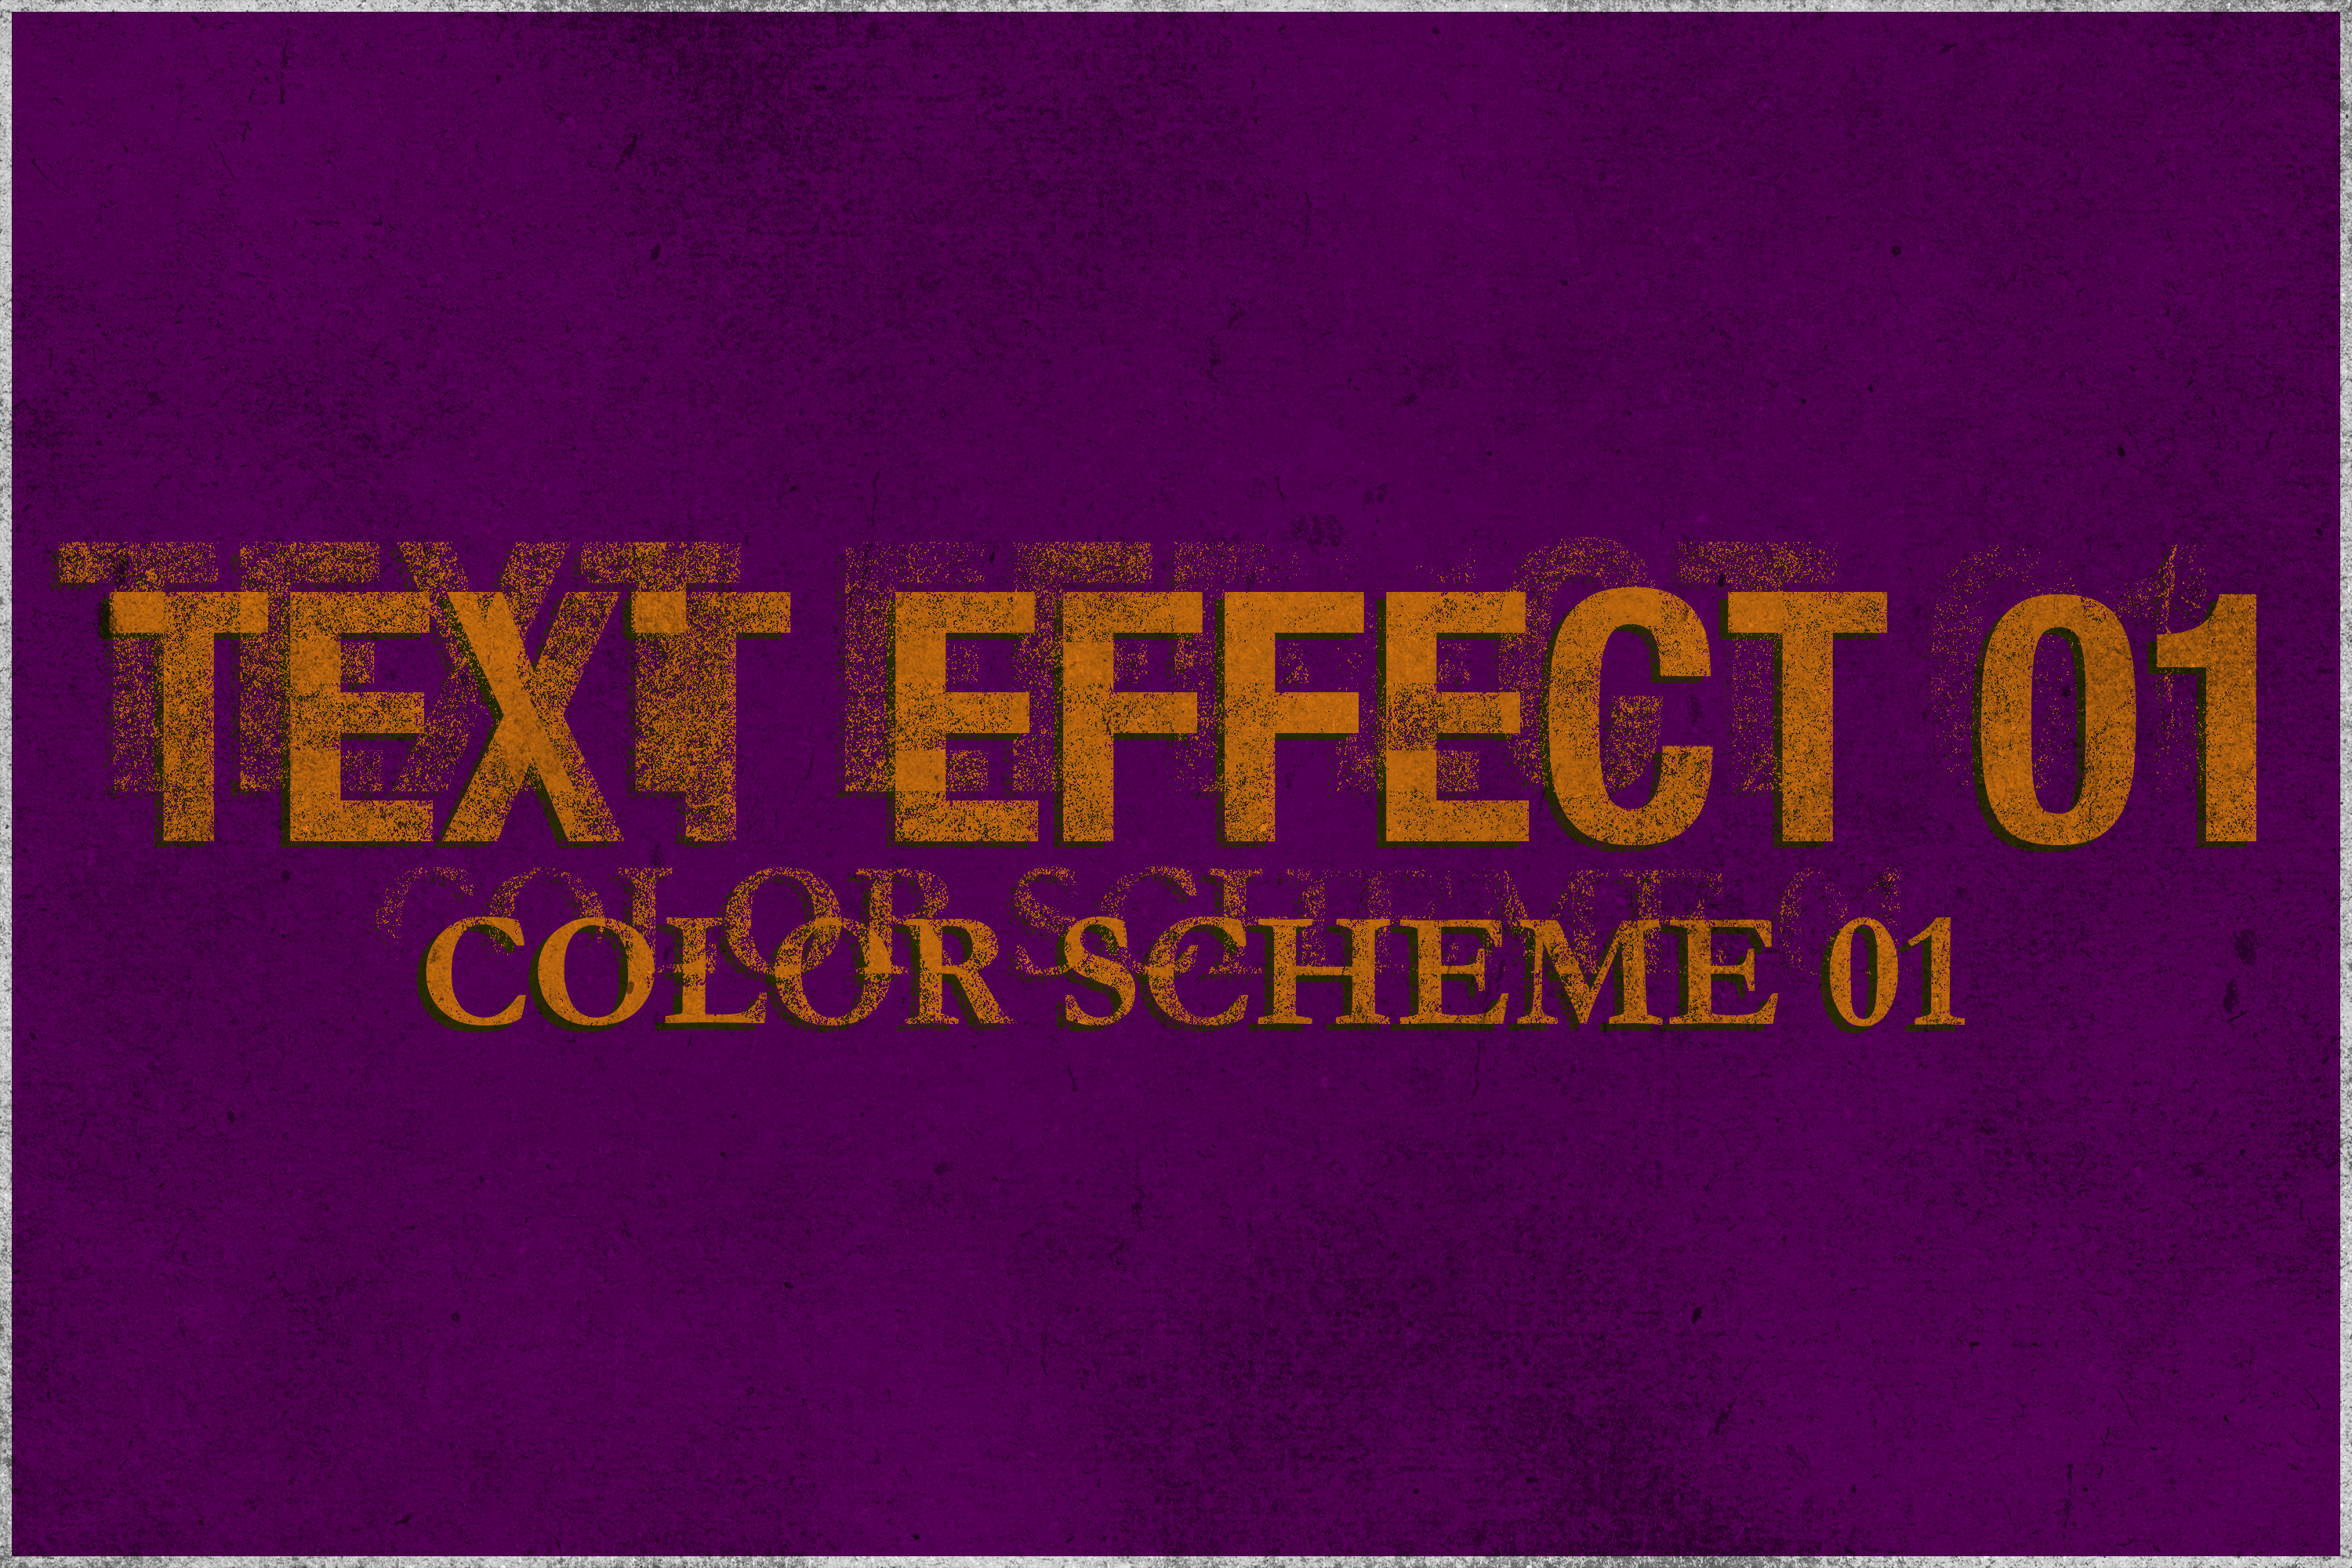 Corrosion - Vintage Text Effect example image 2